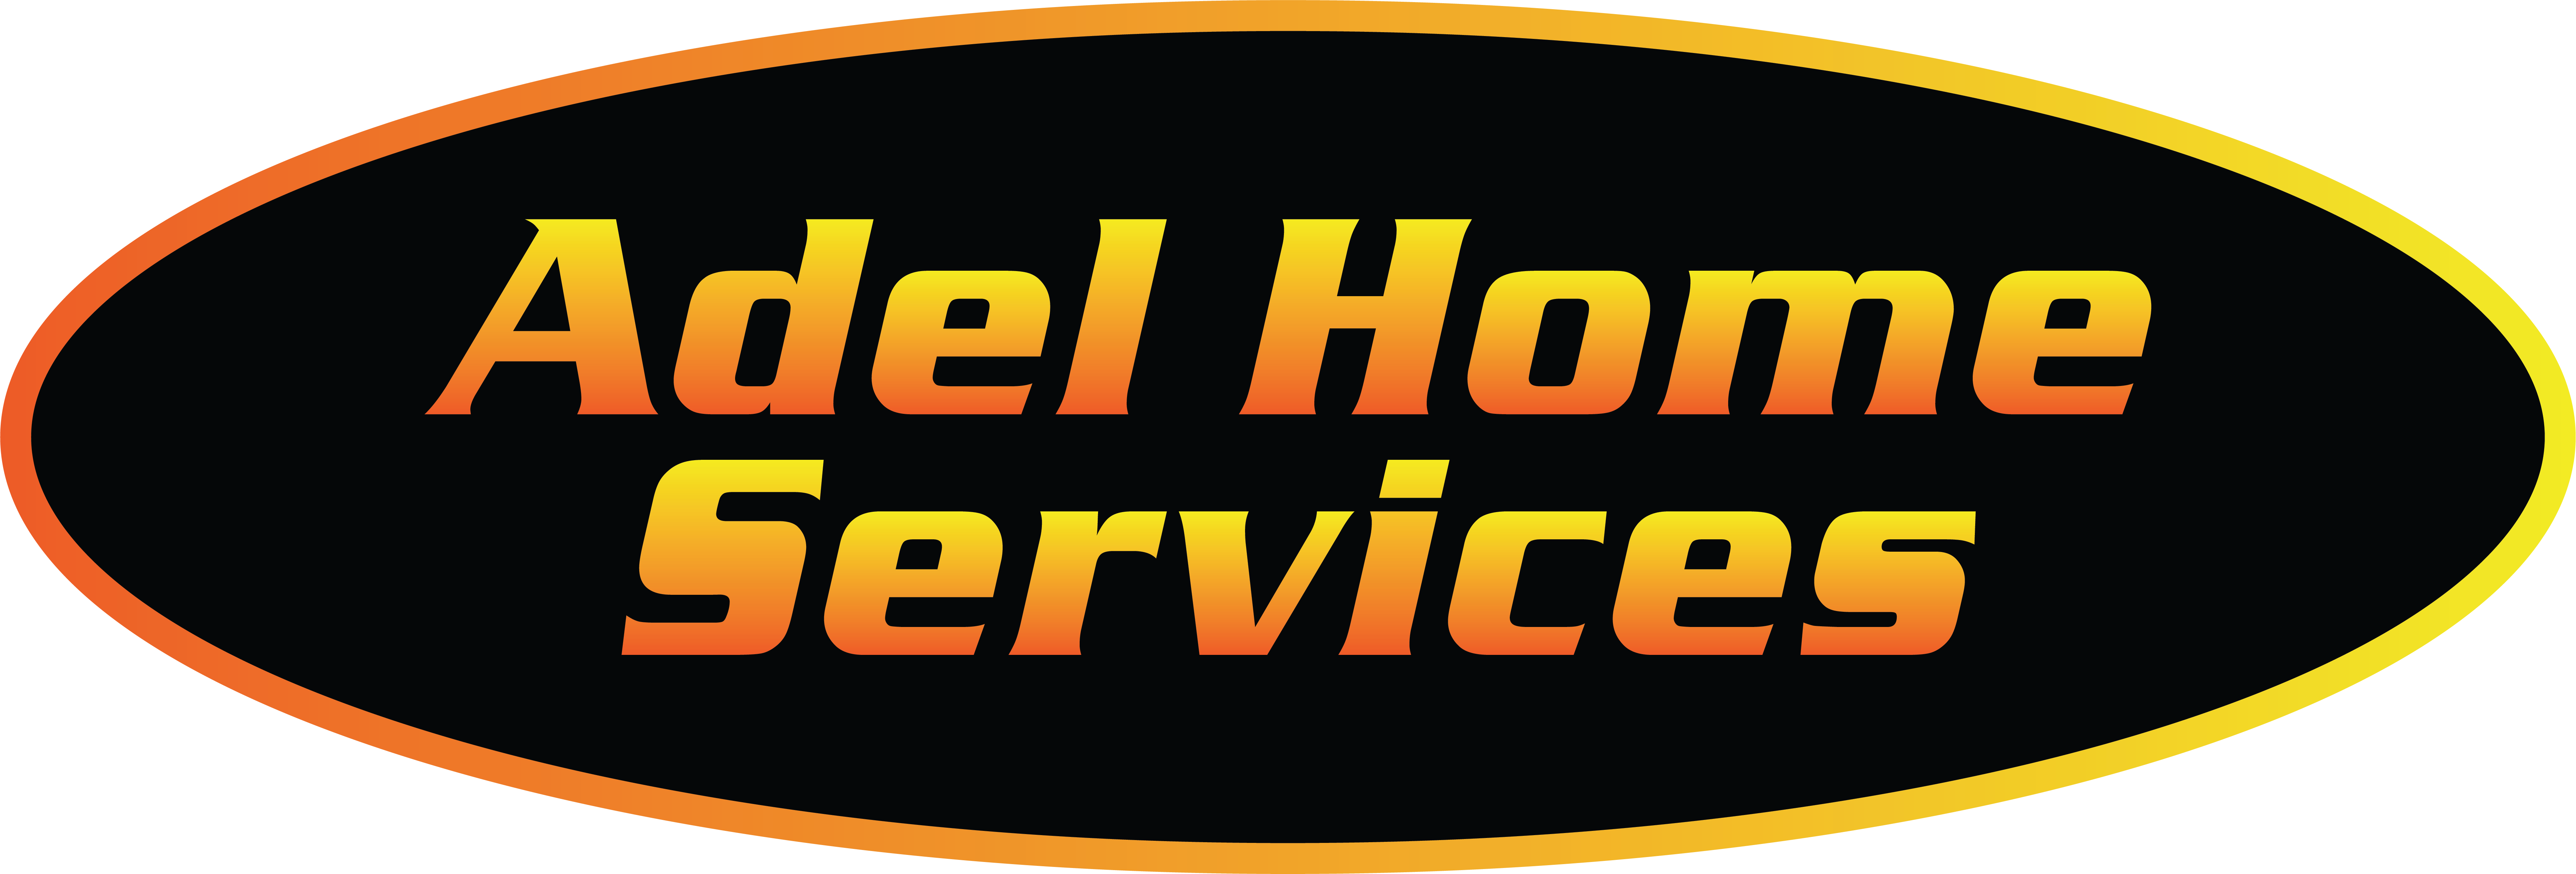 Adel Home Services